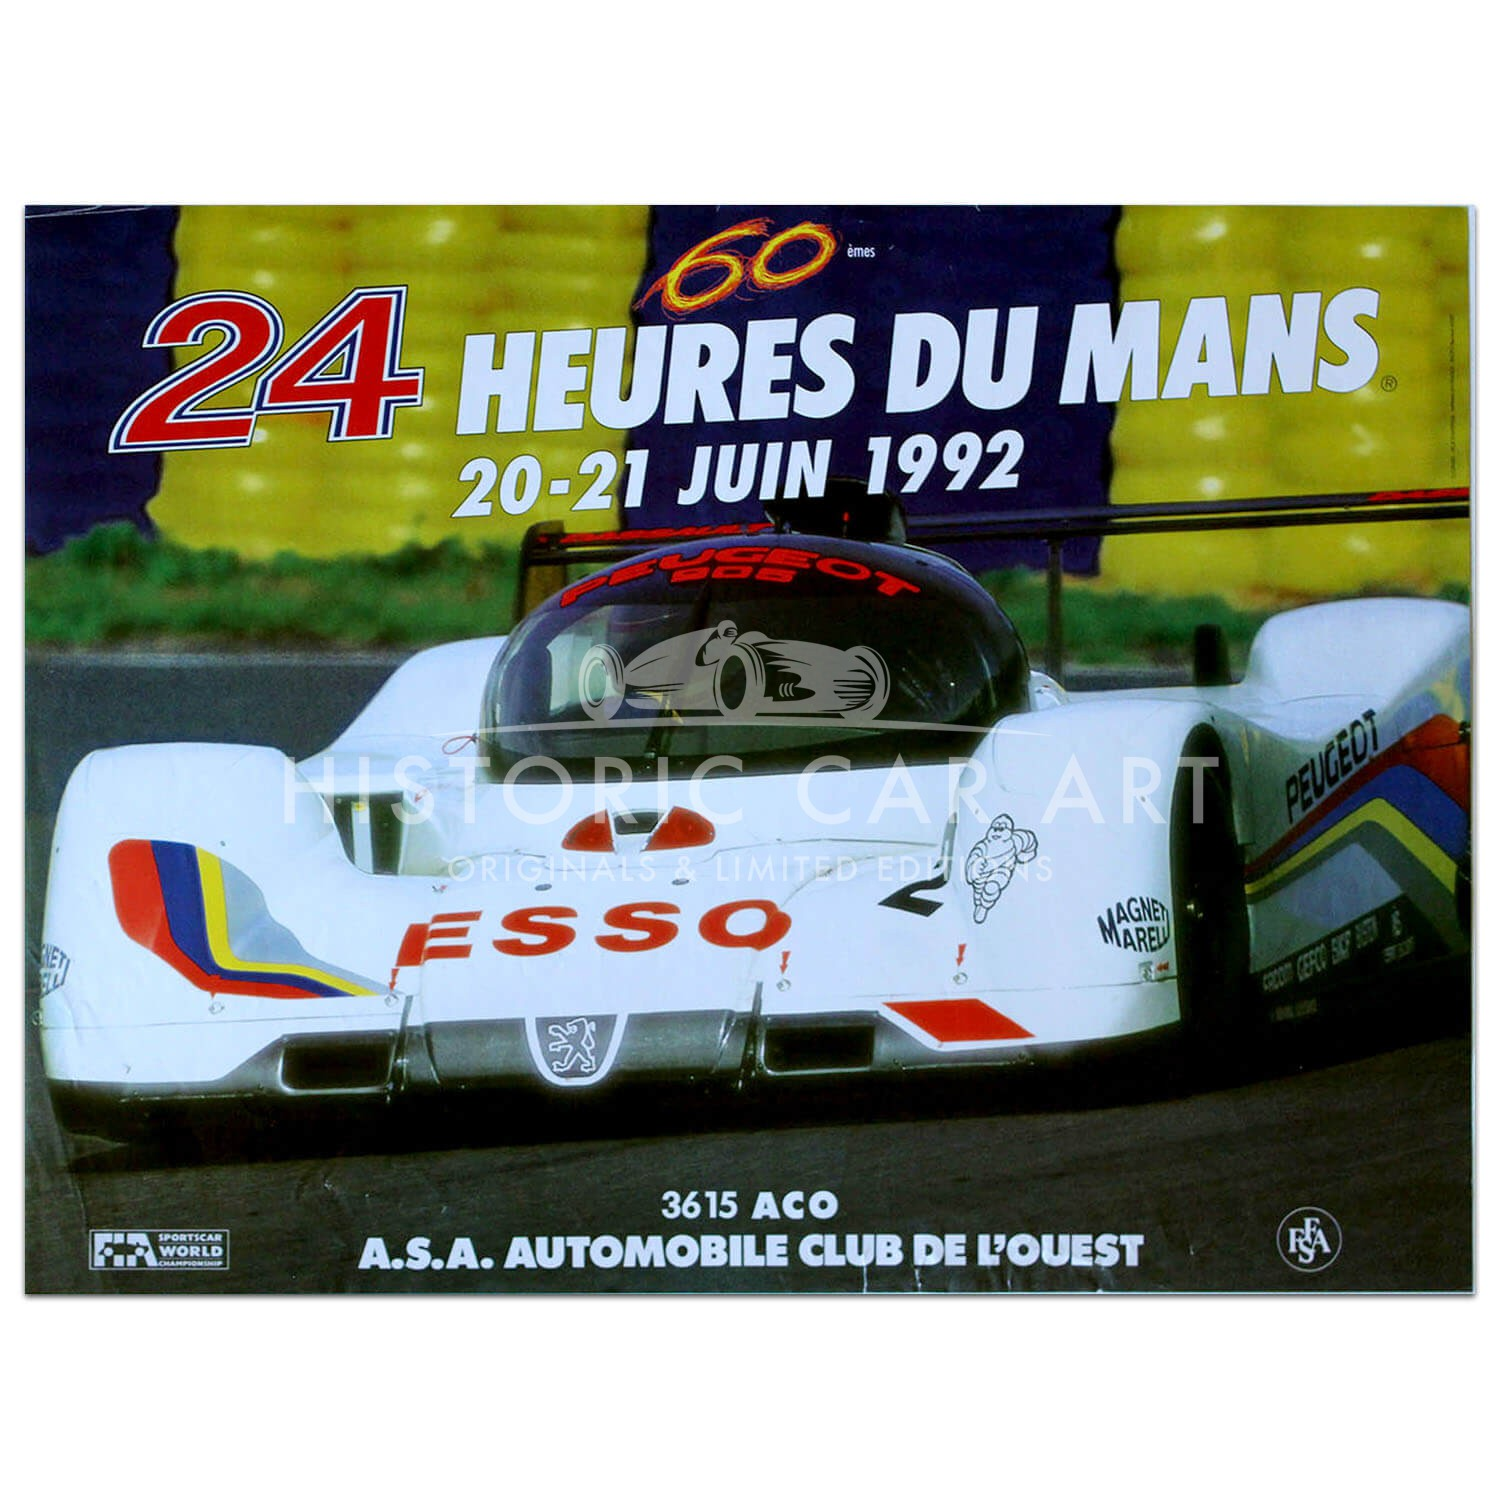 French | Le Mans 24 hours 1992 Poster